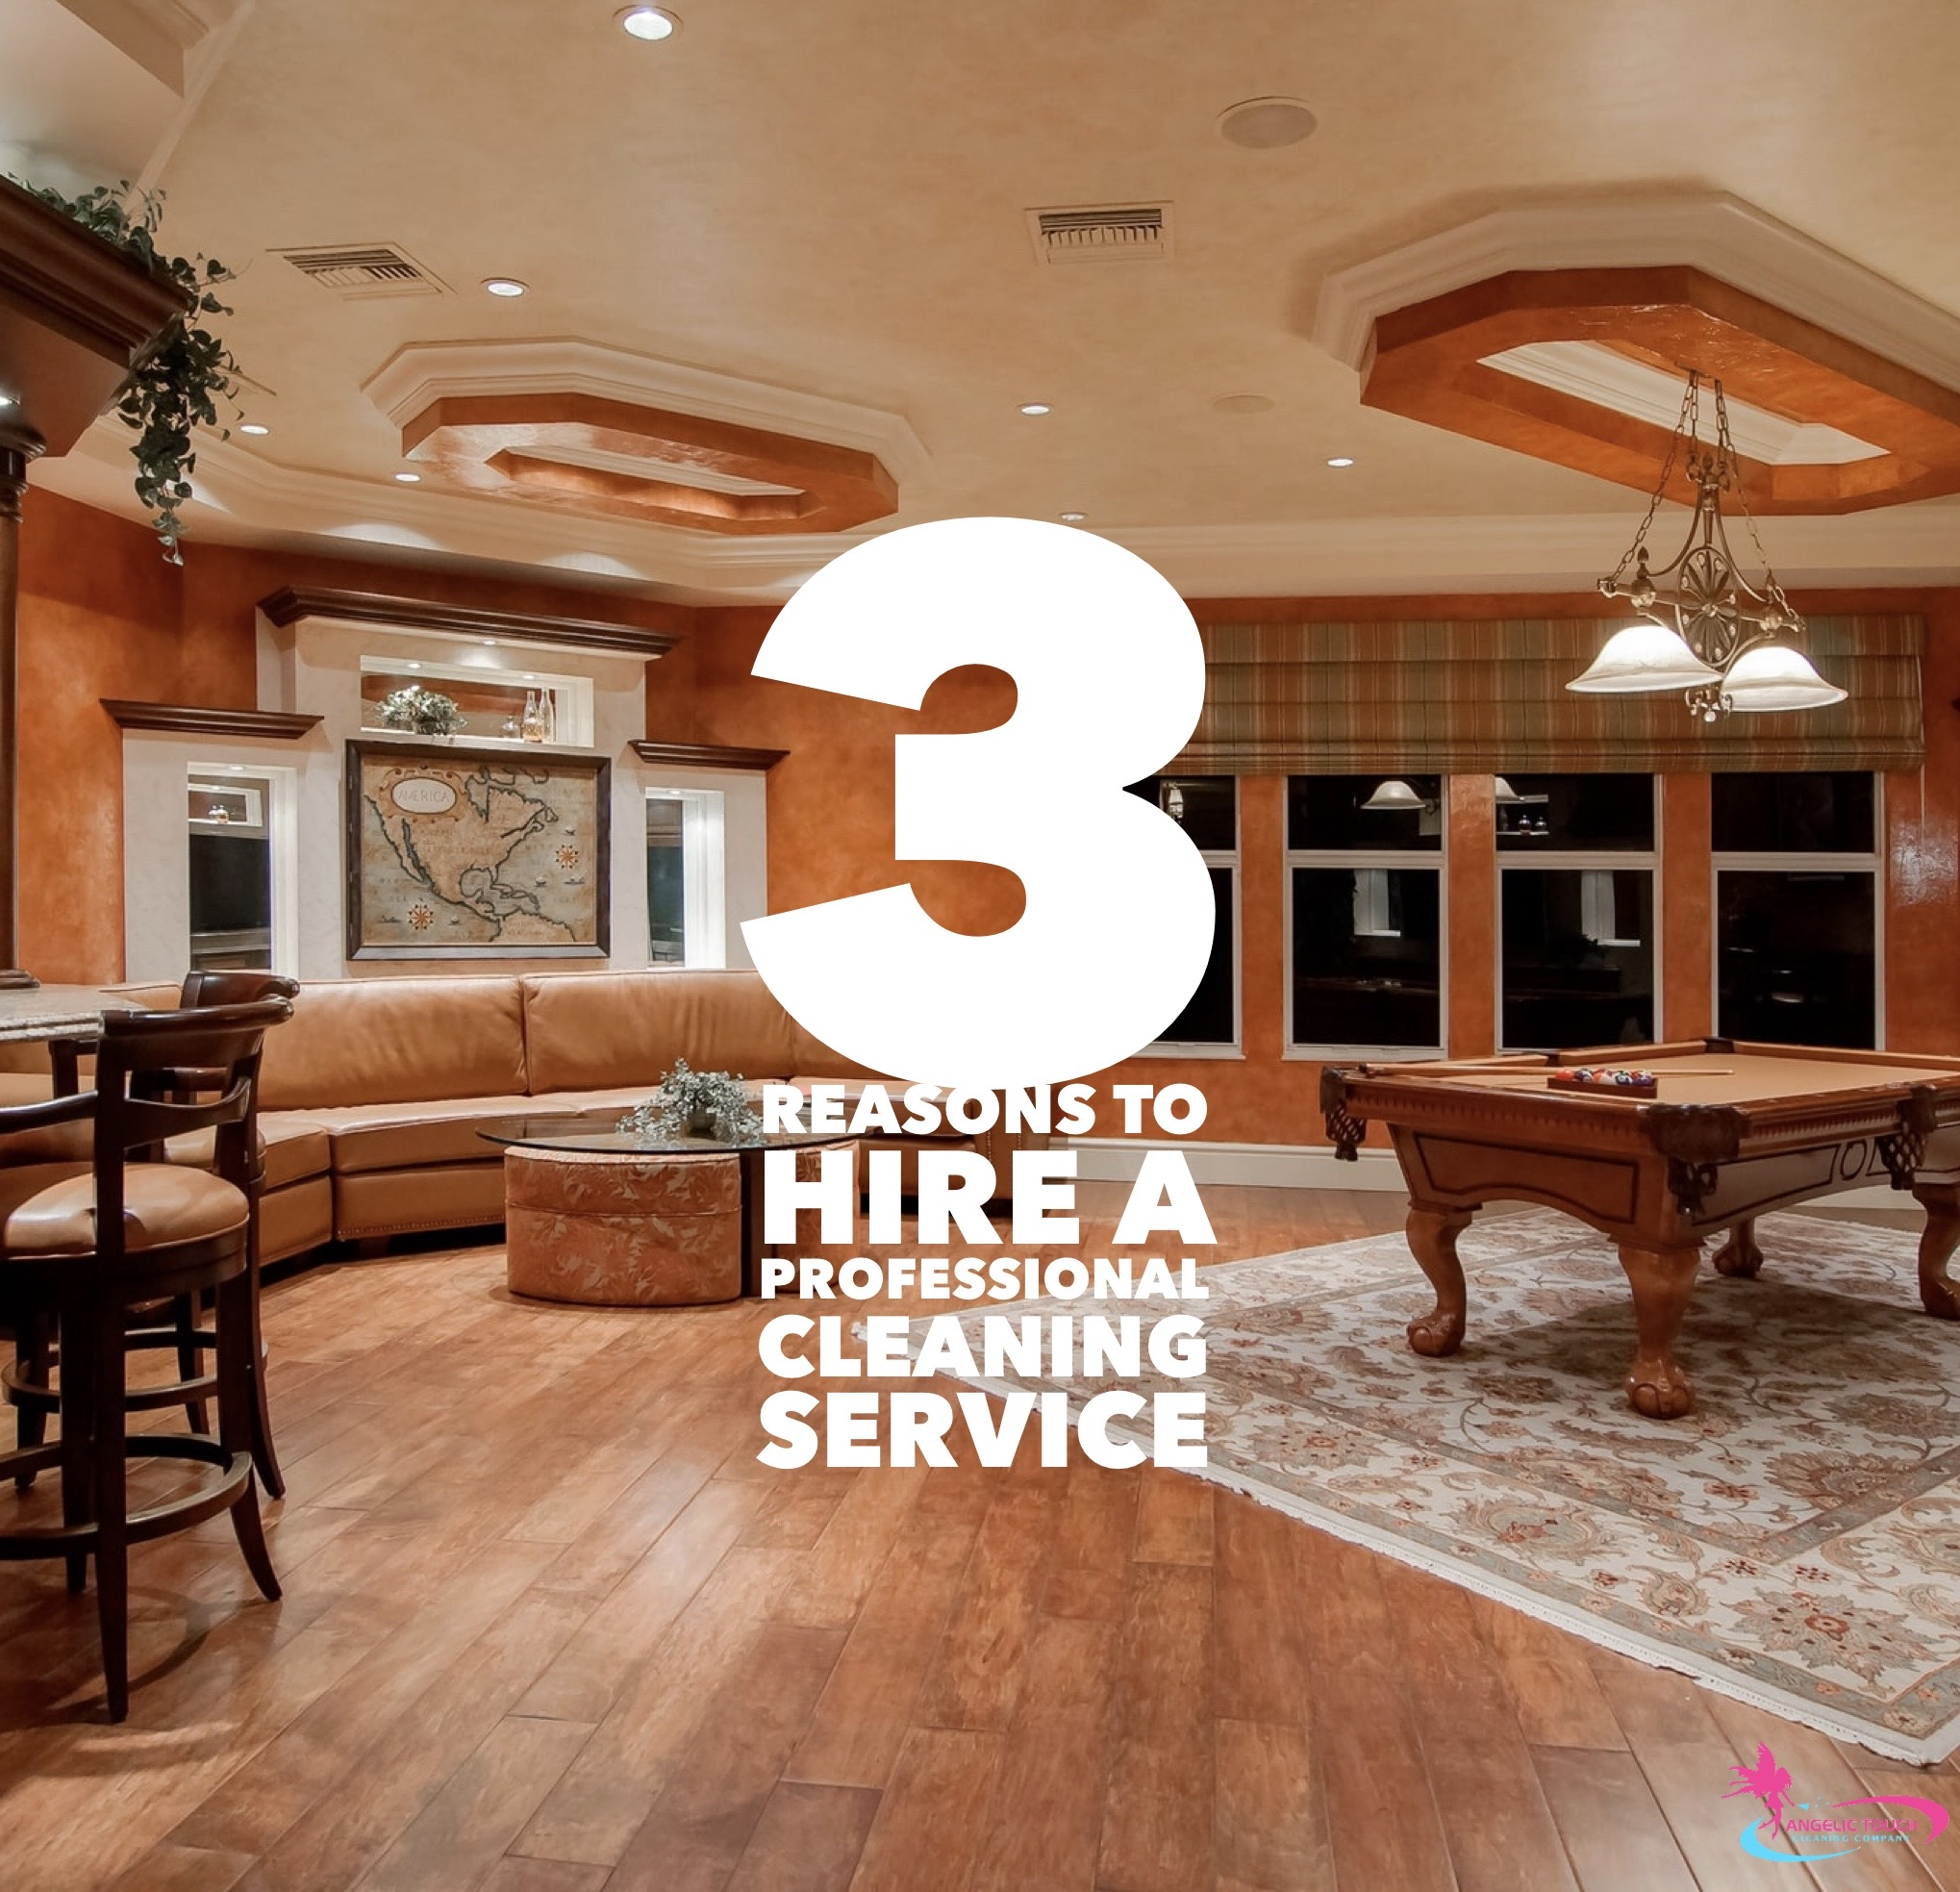 3 Reasons to Hire a Professional Cleaning Service